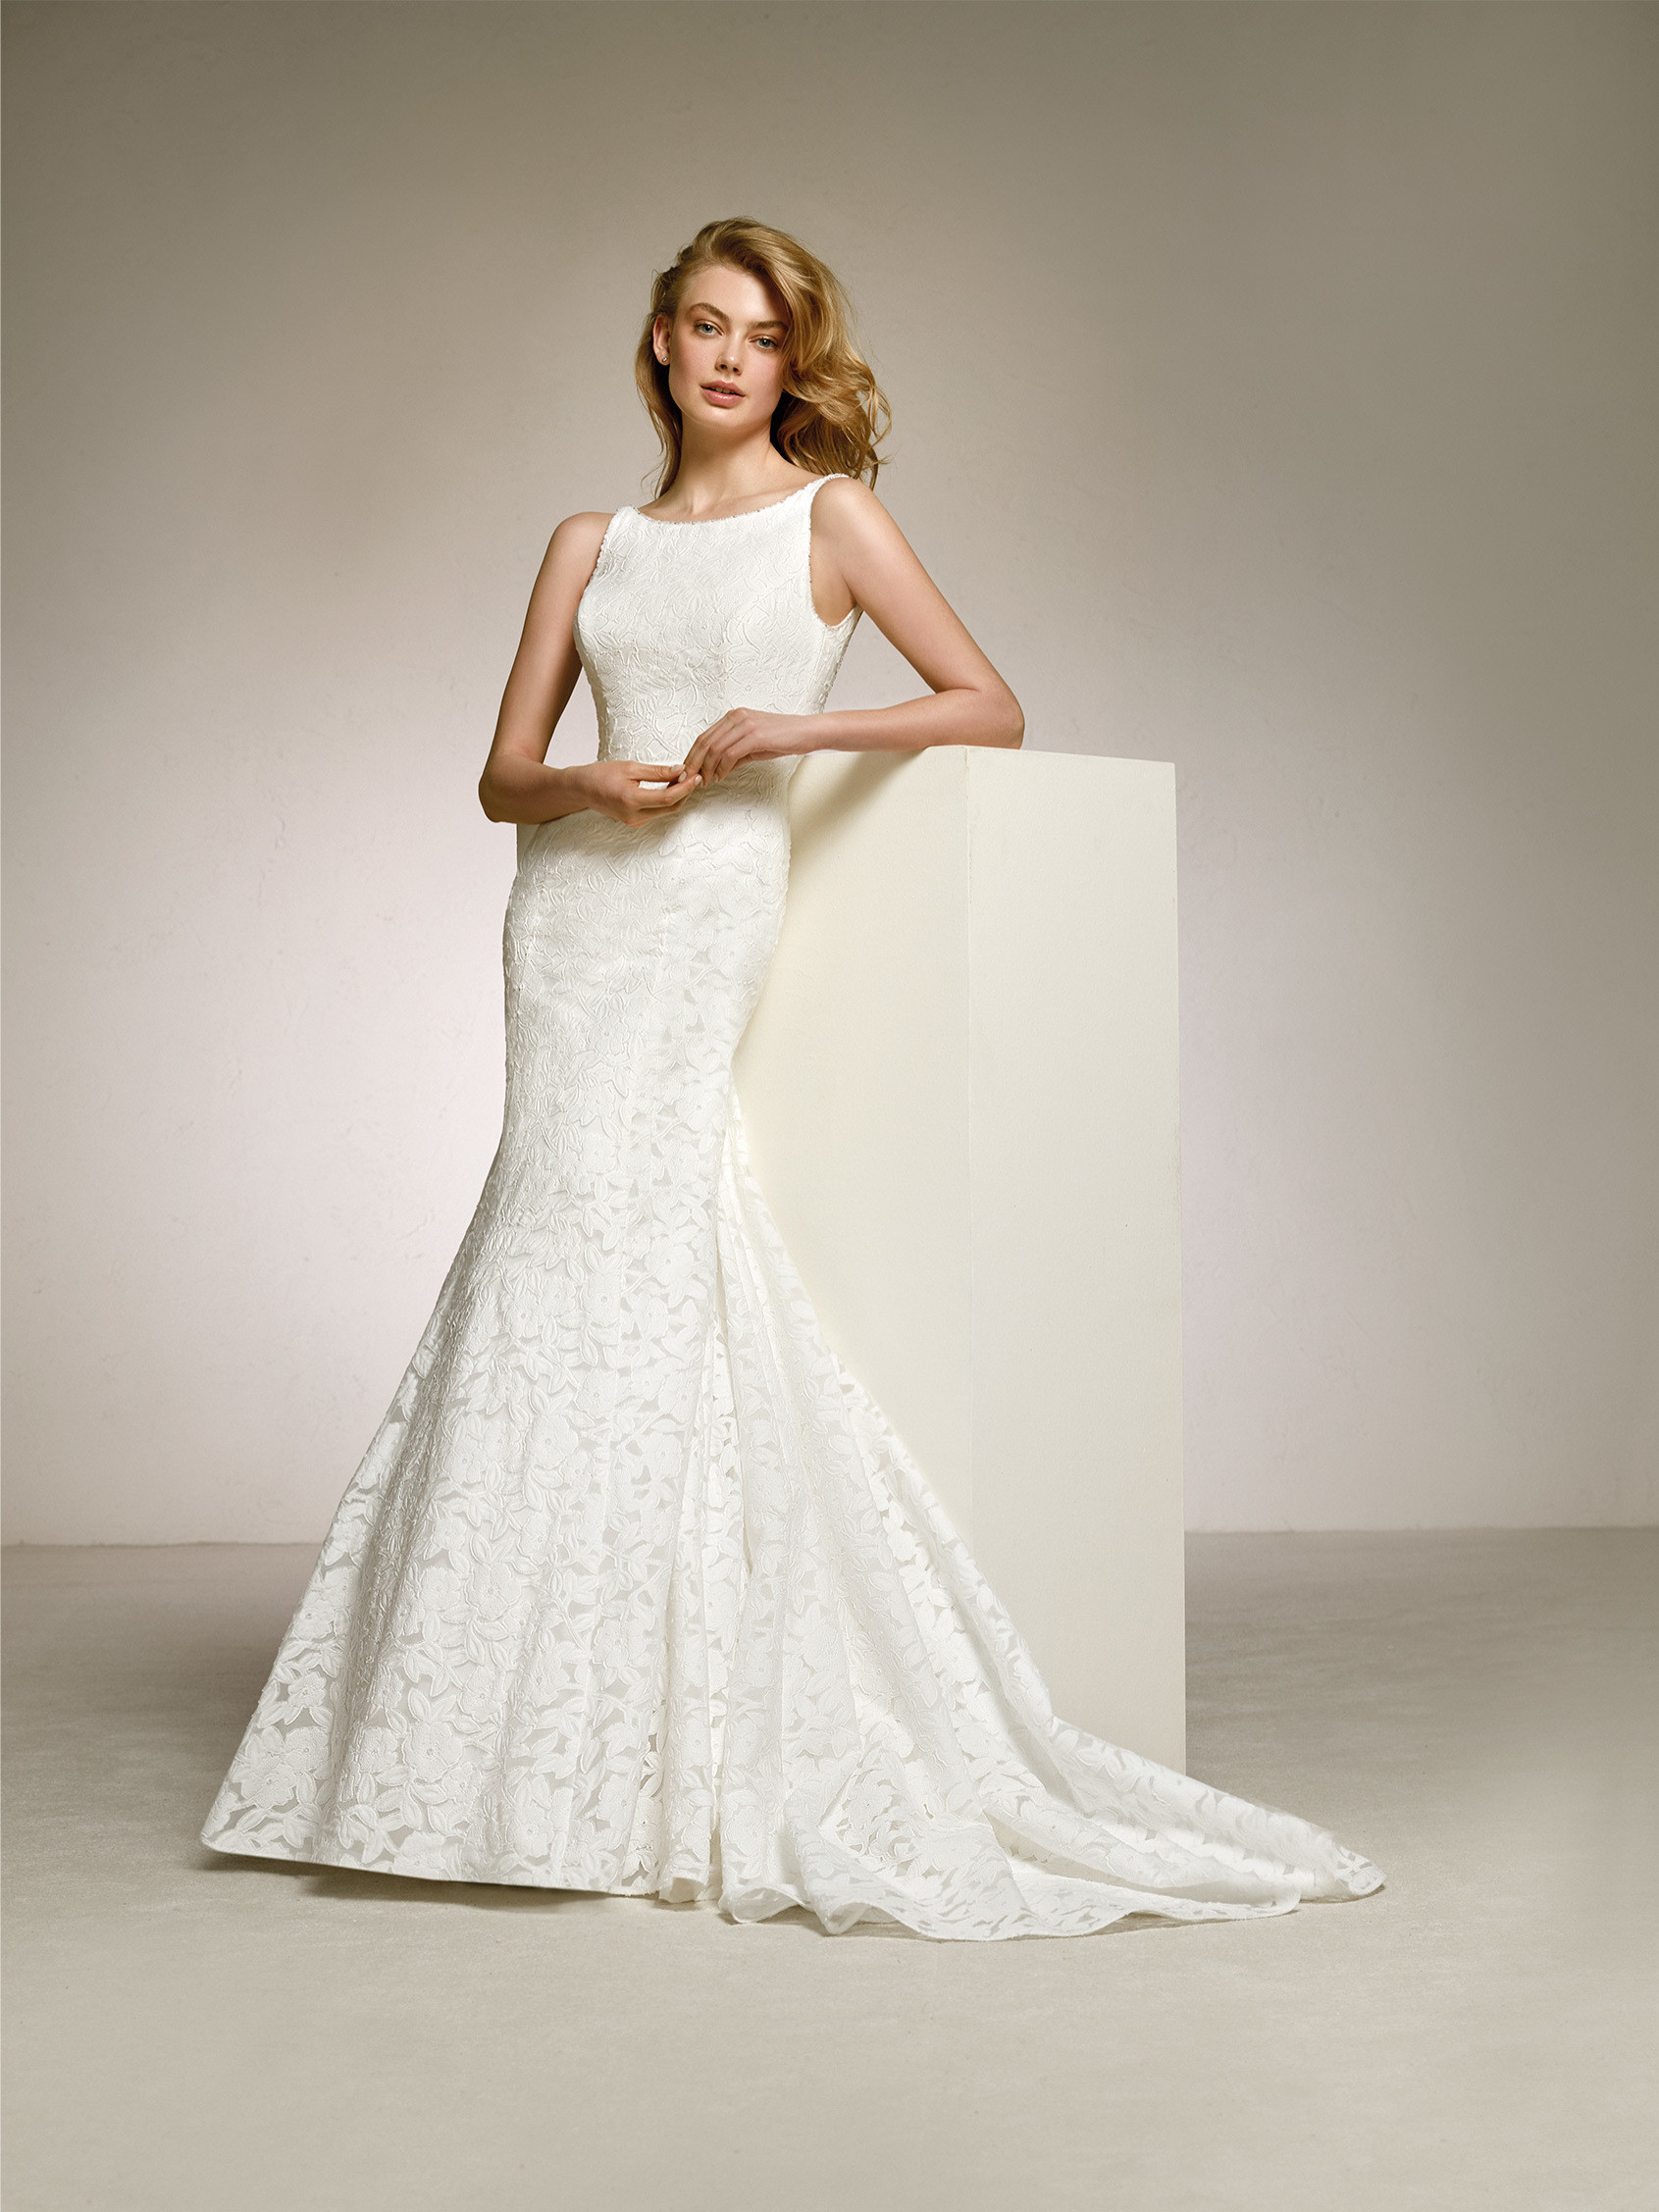 Debut luv bridal formal wedding dresses ombrellifo Choice Image